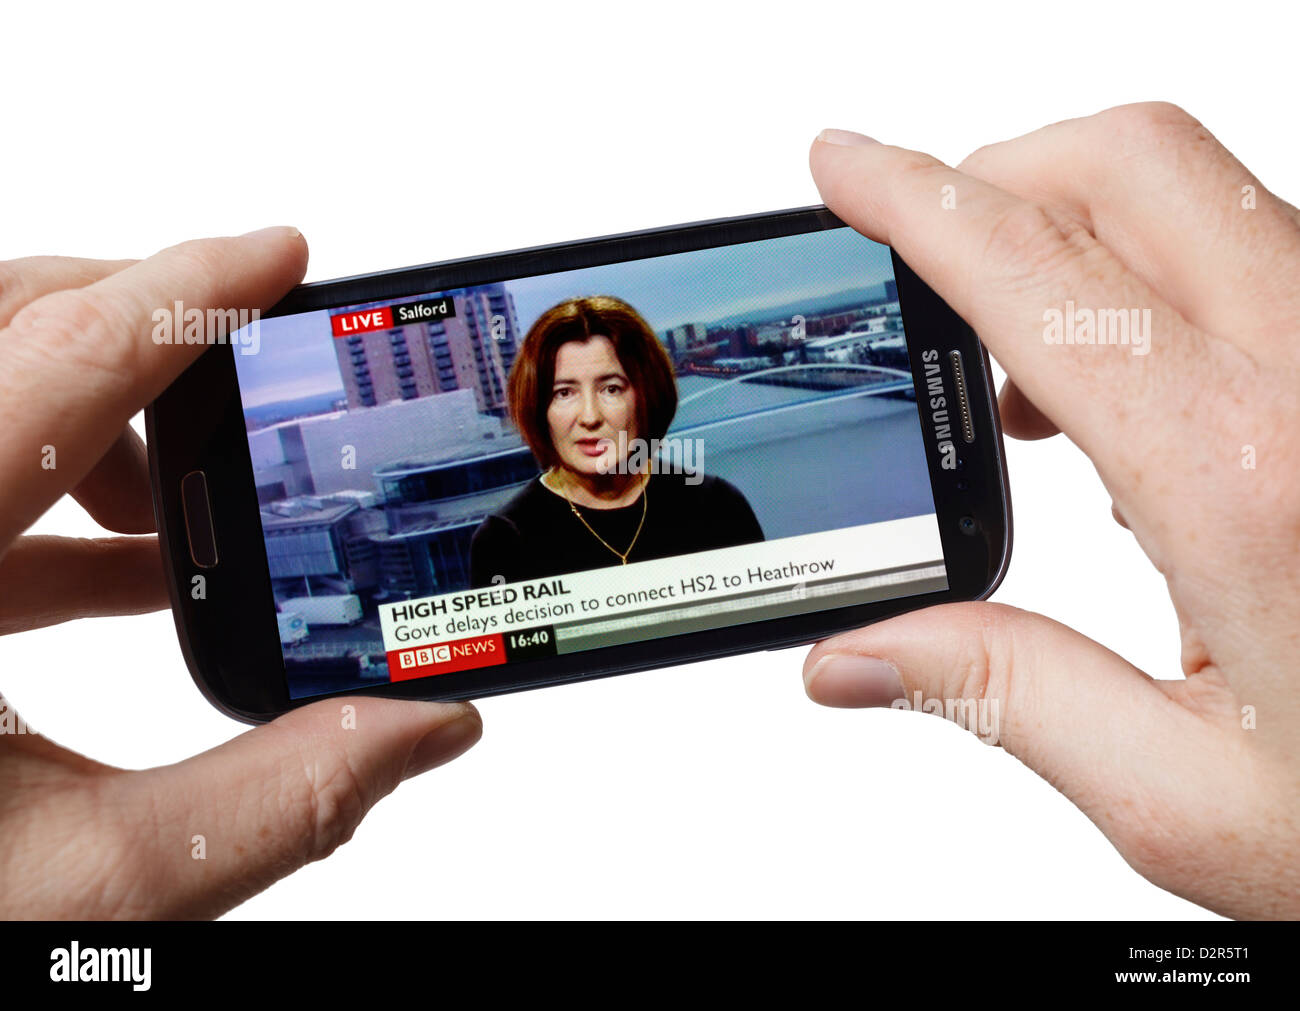 Watching TV live Sky News TV on a Samsung Galaxy android mobile phone smartphone smart phone - Stock Image